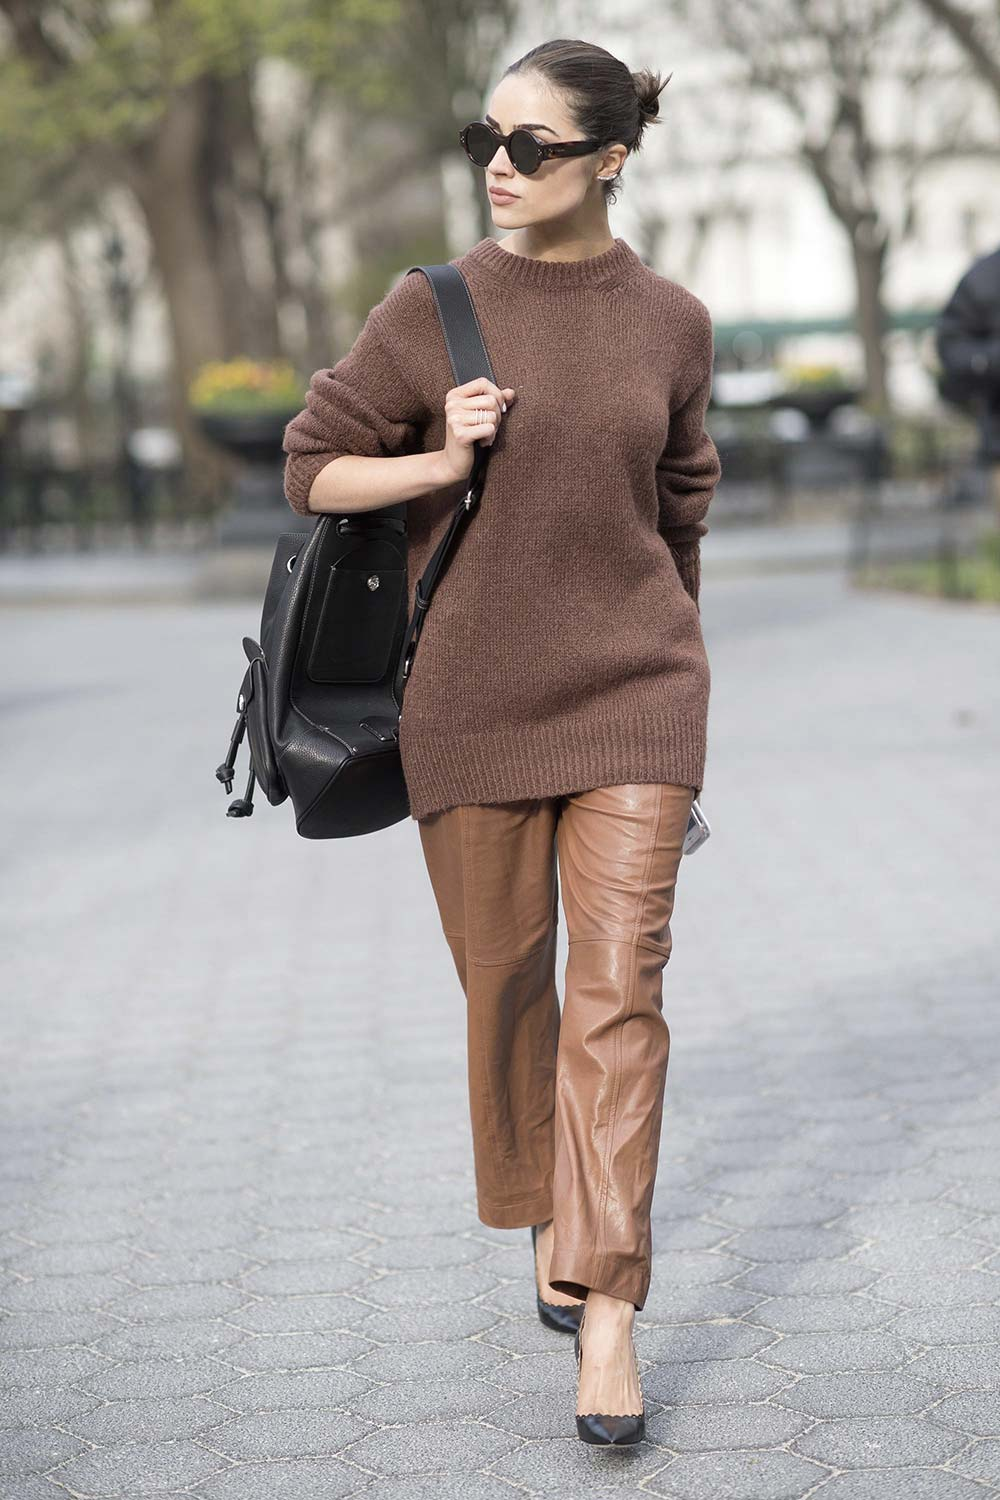 Olivia Culpo Street Style in New York City